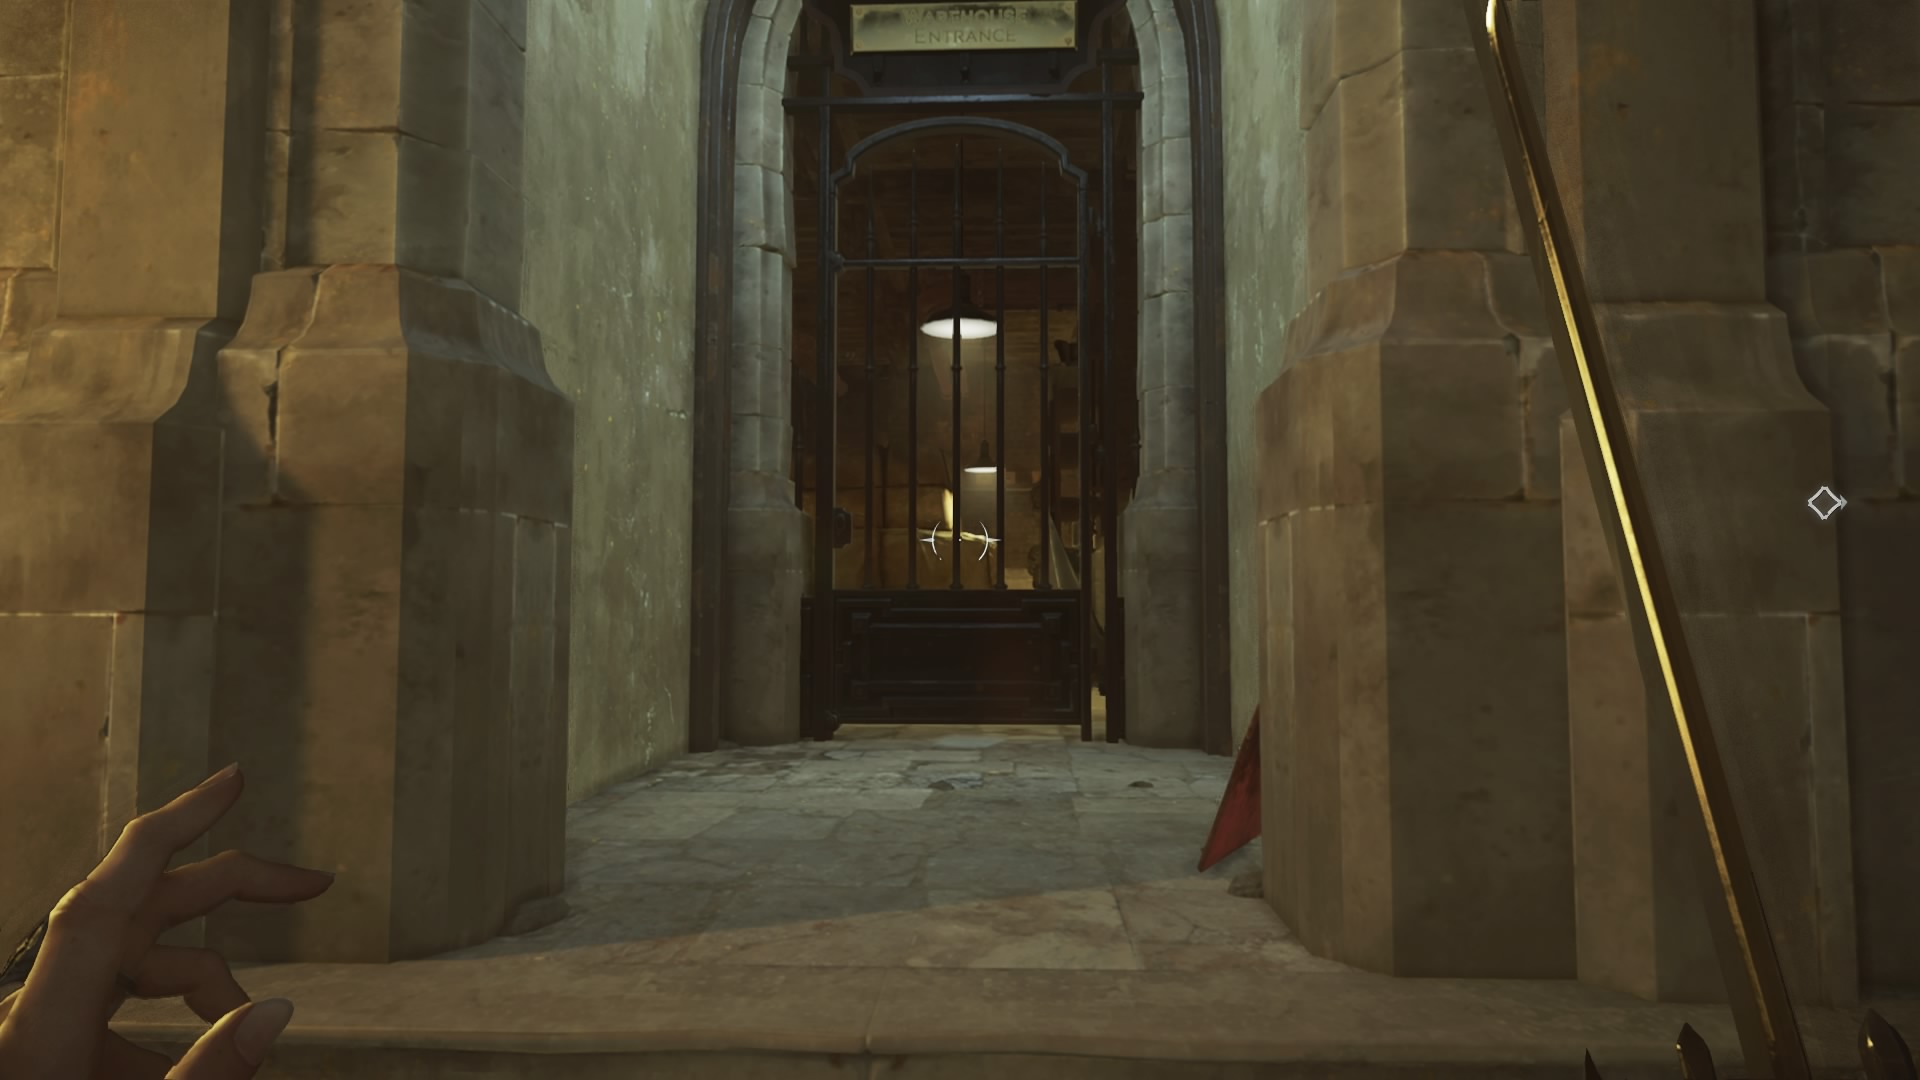 Lighting Basement Washroom Stairs: Dishonored 2 Walkthrough Level 9: Death To The Empress